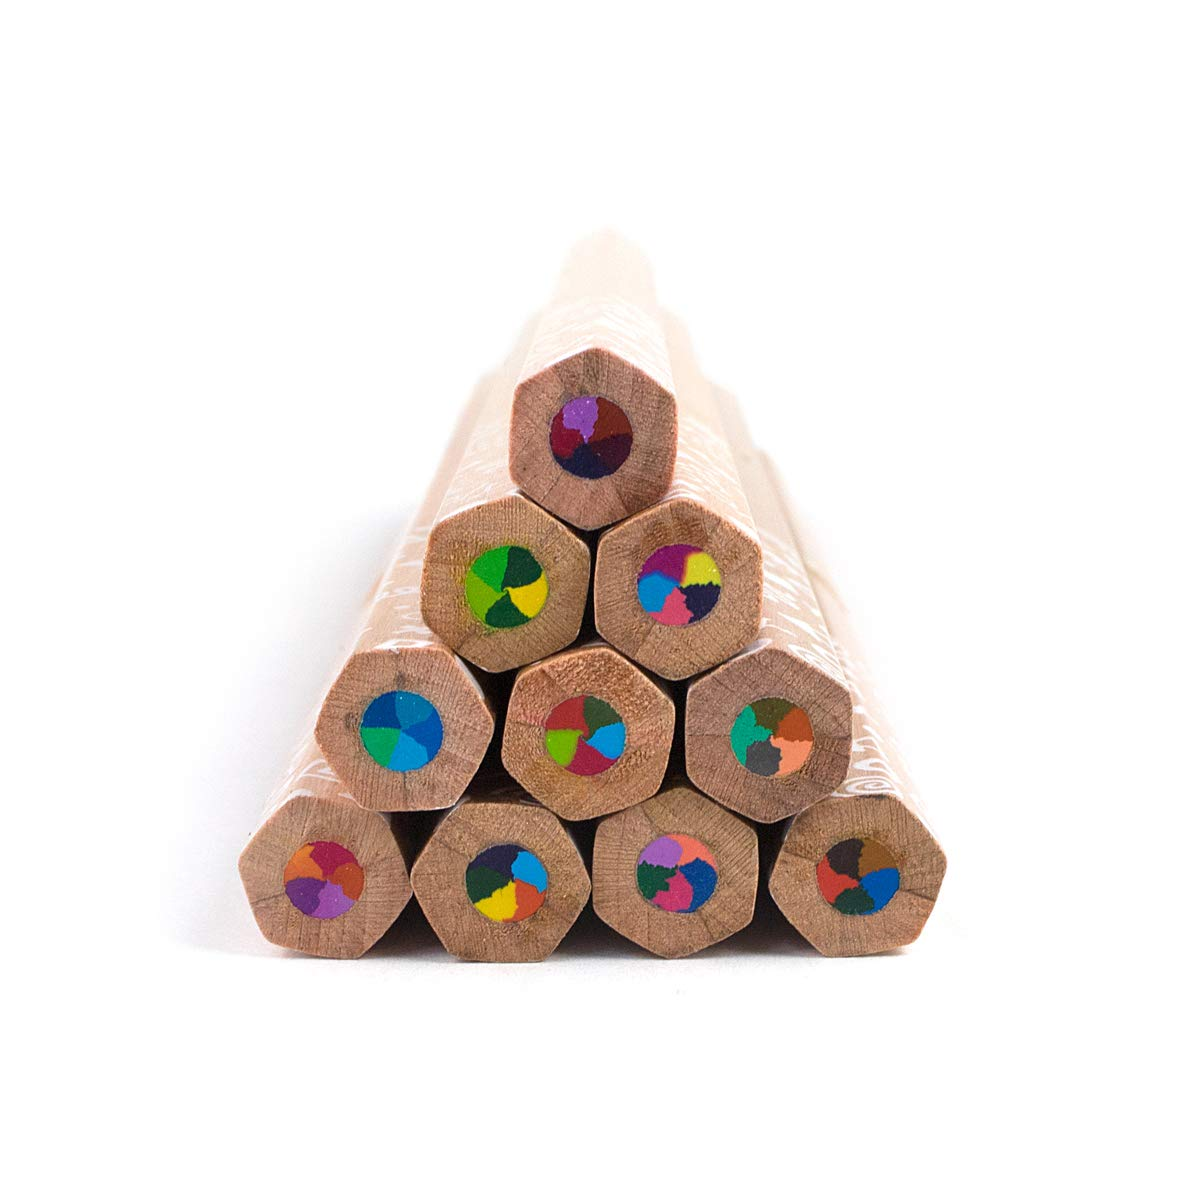 Kaleidoscope Multi Colored Pencils - Set of 10 by OOLY